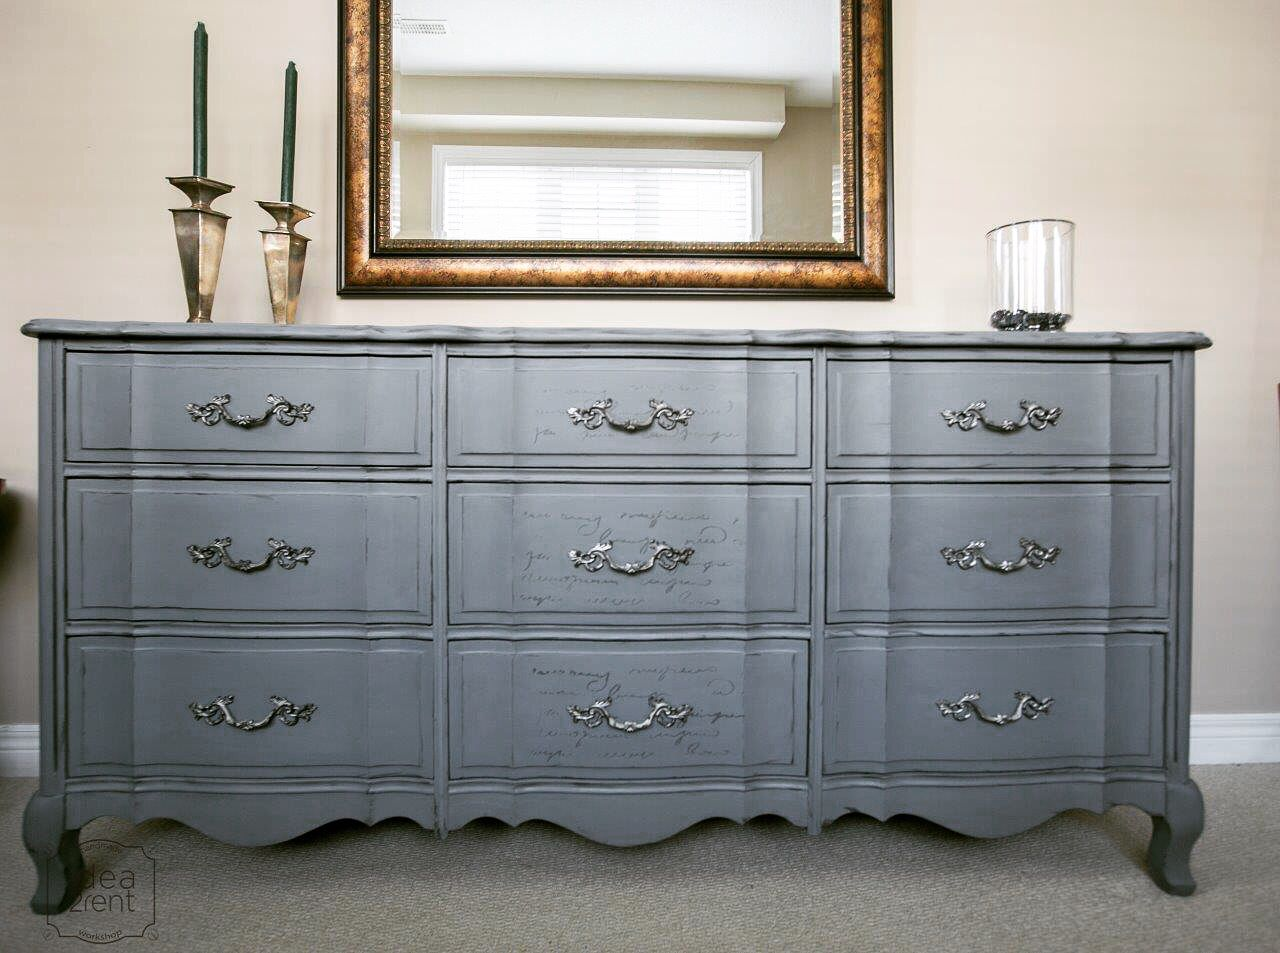 Provincial further grey painted french provincial bedroom furniture - French Procincial Gray Chalk Painted Dresser With Silver Accents